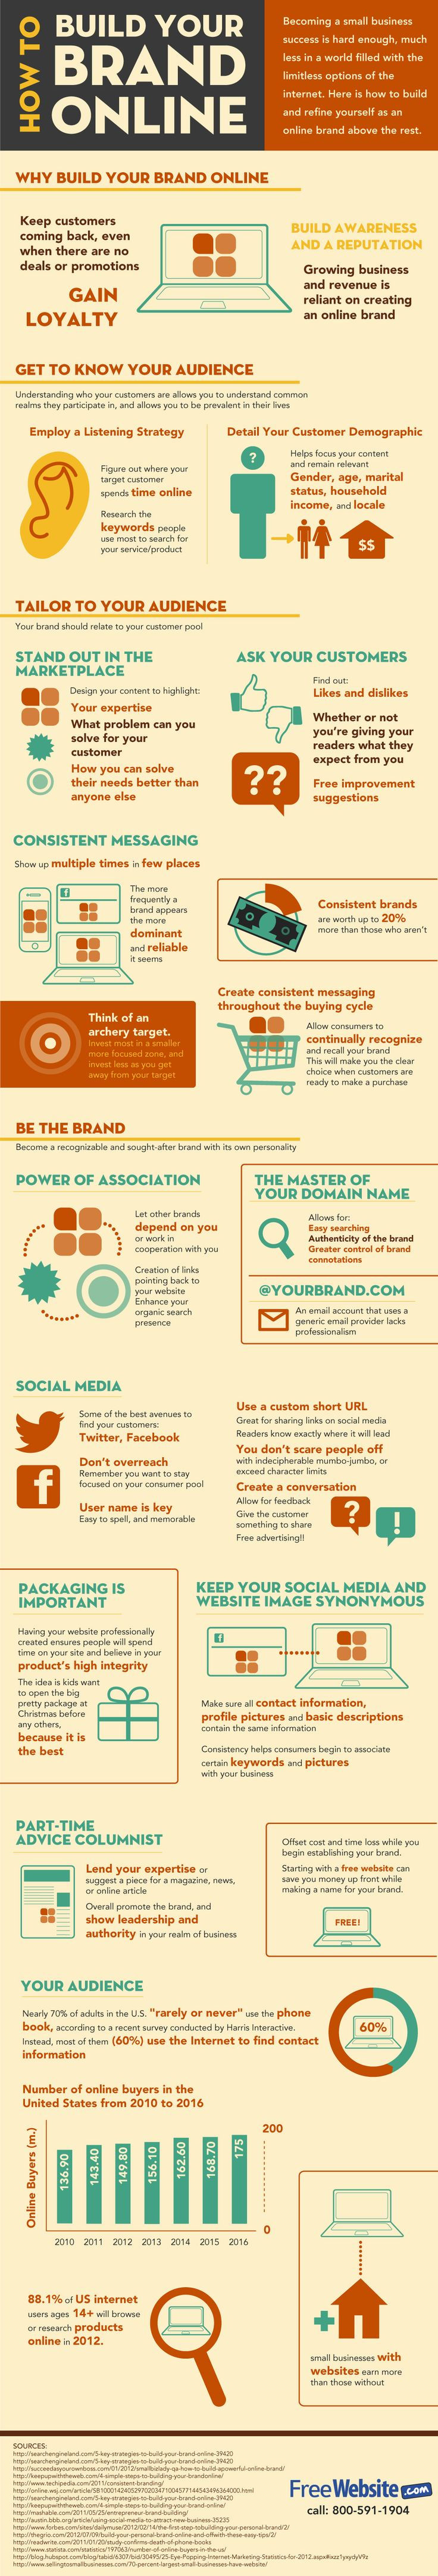 9 Powerful Ways To Build Your Brand Online Presence [infographic] ~ Digital Information World